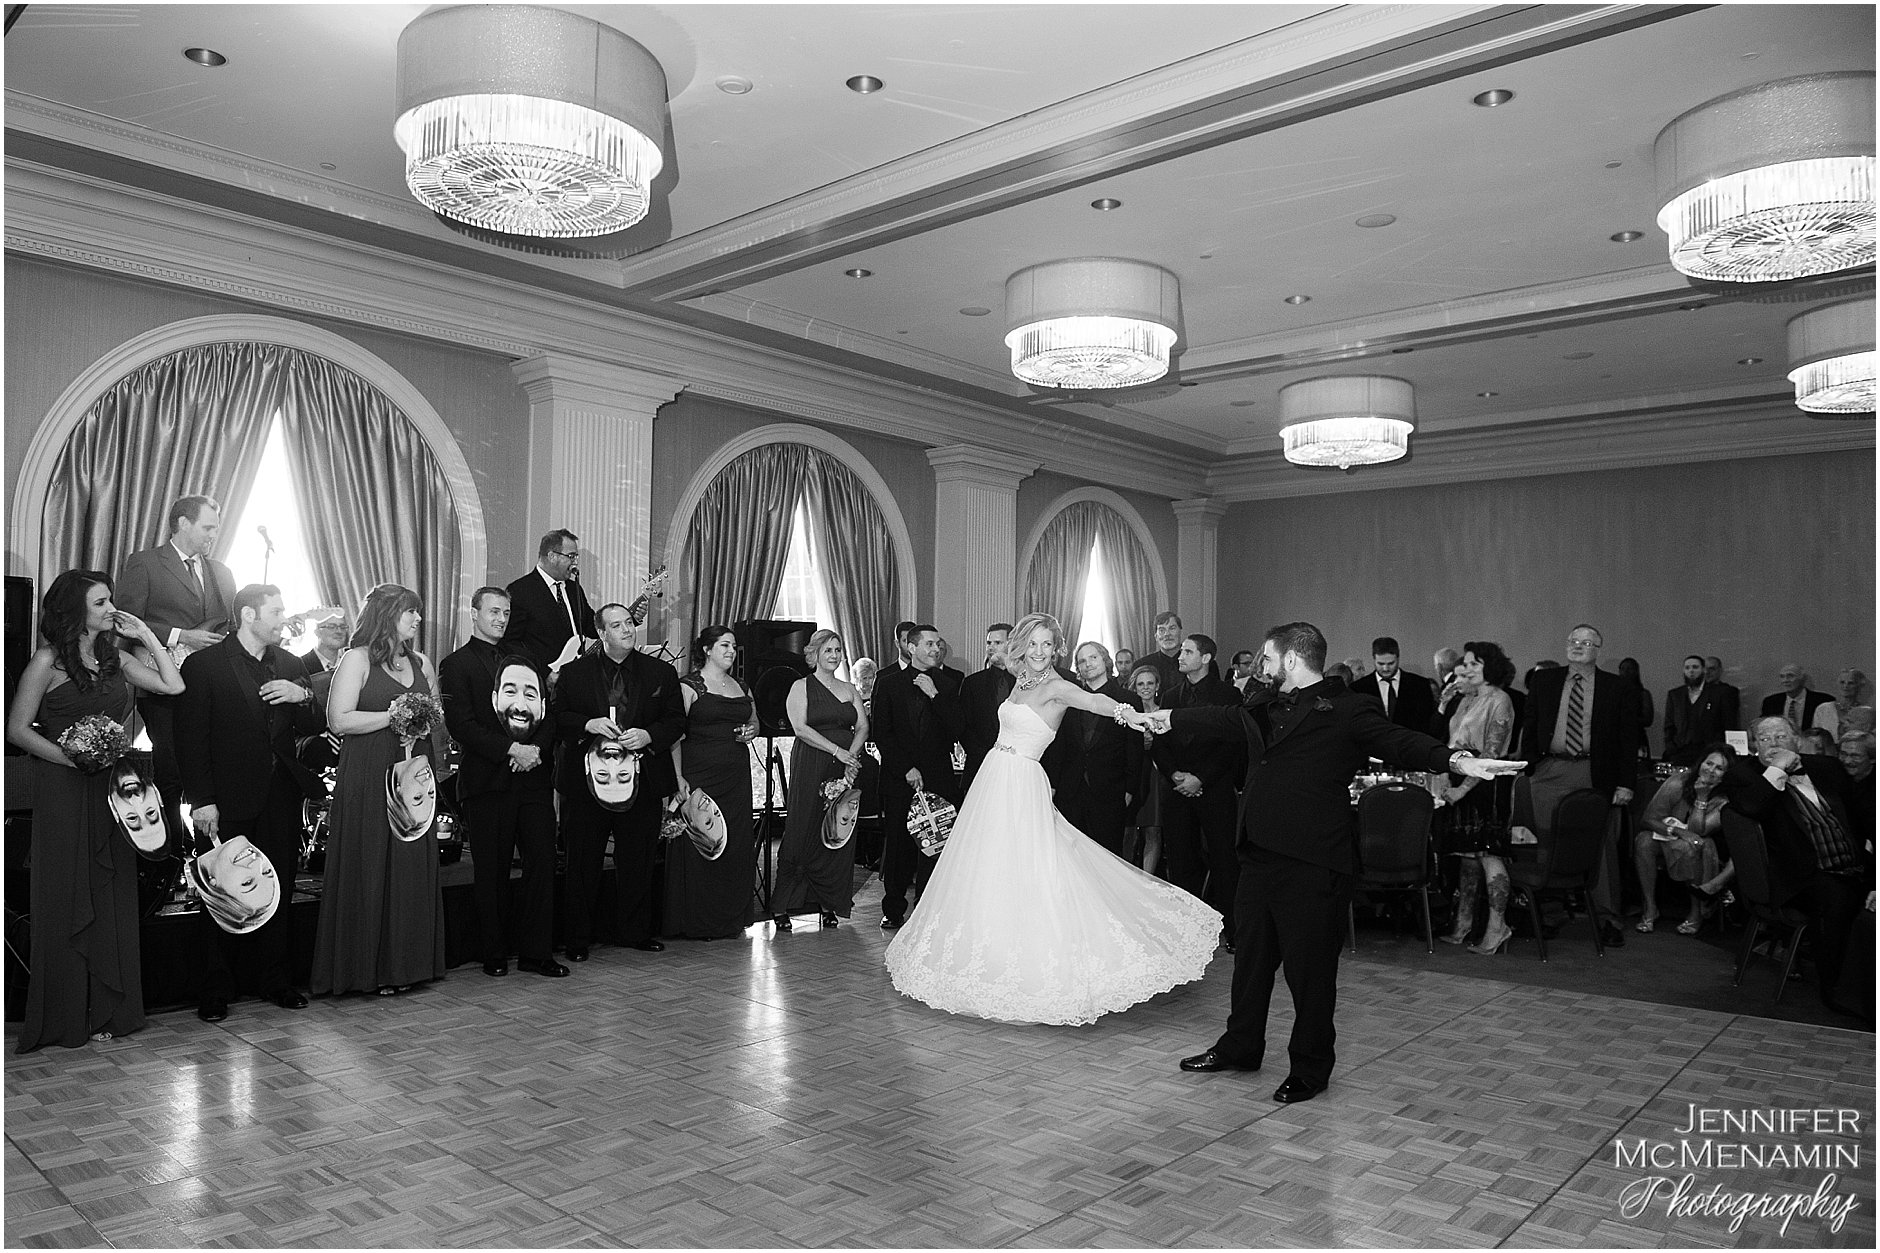 053-MorrisPustilnik_02449bw-0531_Jennifer-McMenamin-Photography-Royal-Sonesta-Harbor-Court-Hotel-wedding-Baltimore-wedding-photographer